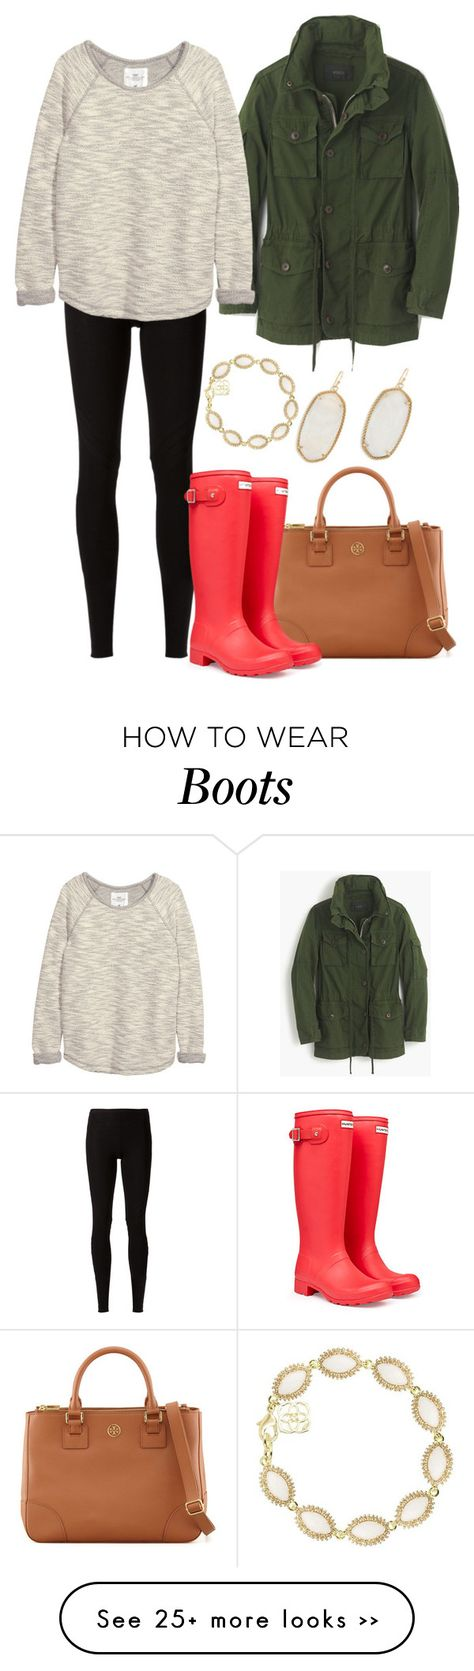 """""""Olive Green Jacket Pt. 2"""" by vineyard-vines-love on Polyvore featuring Rick Owens Lilies, Tory Burch, J.Crew, Hunter, H&M and Kendra Scott"""